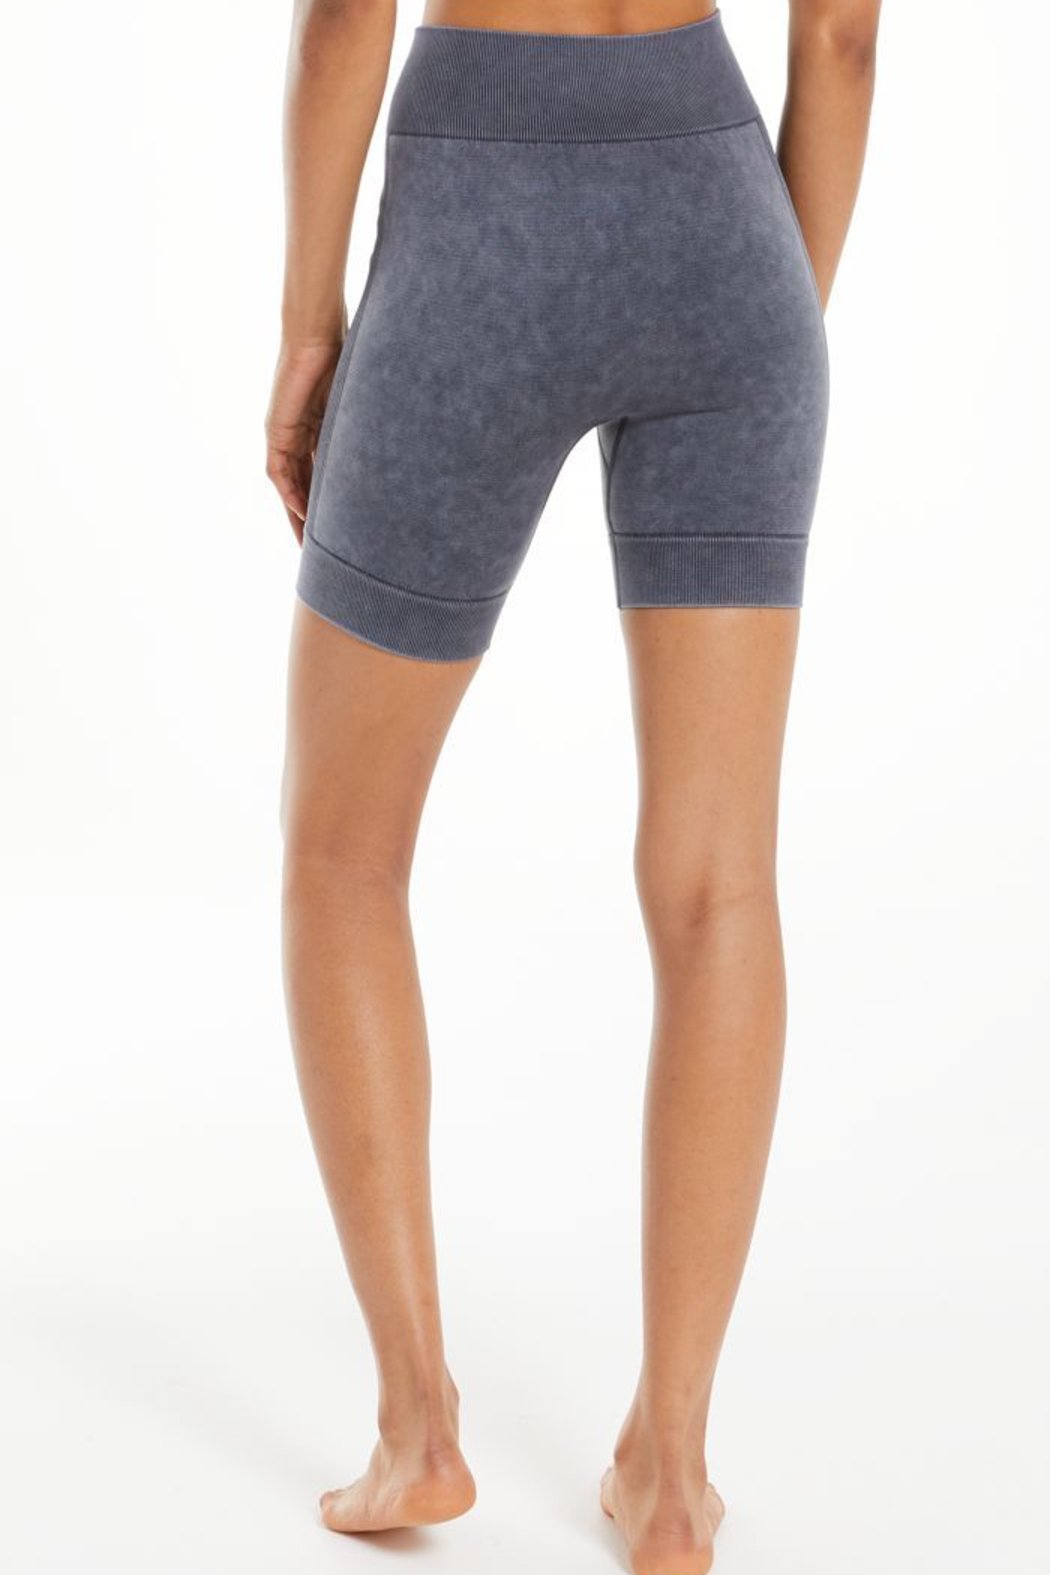 z supply Dance It Out Seamless Short - Side Cropped Image